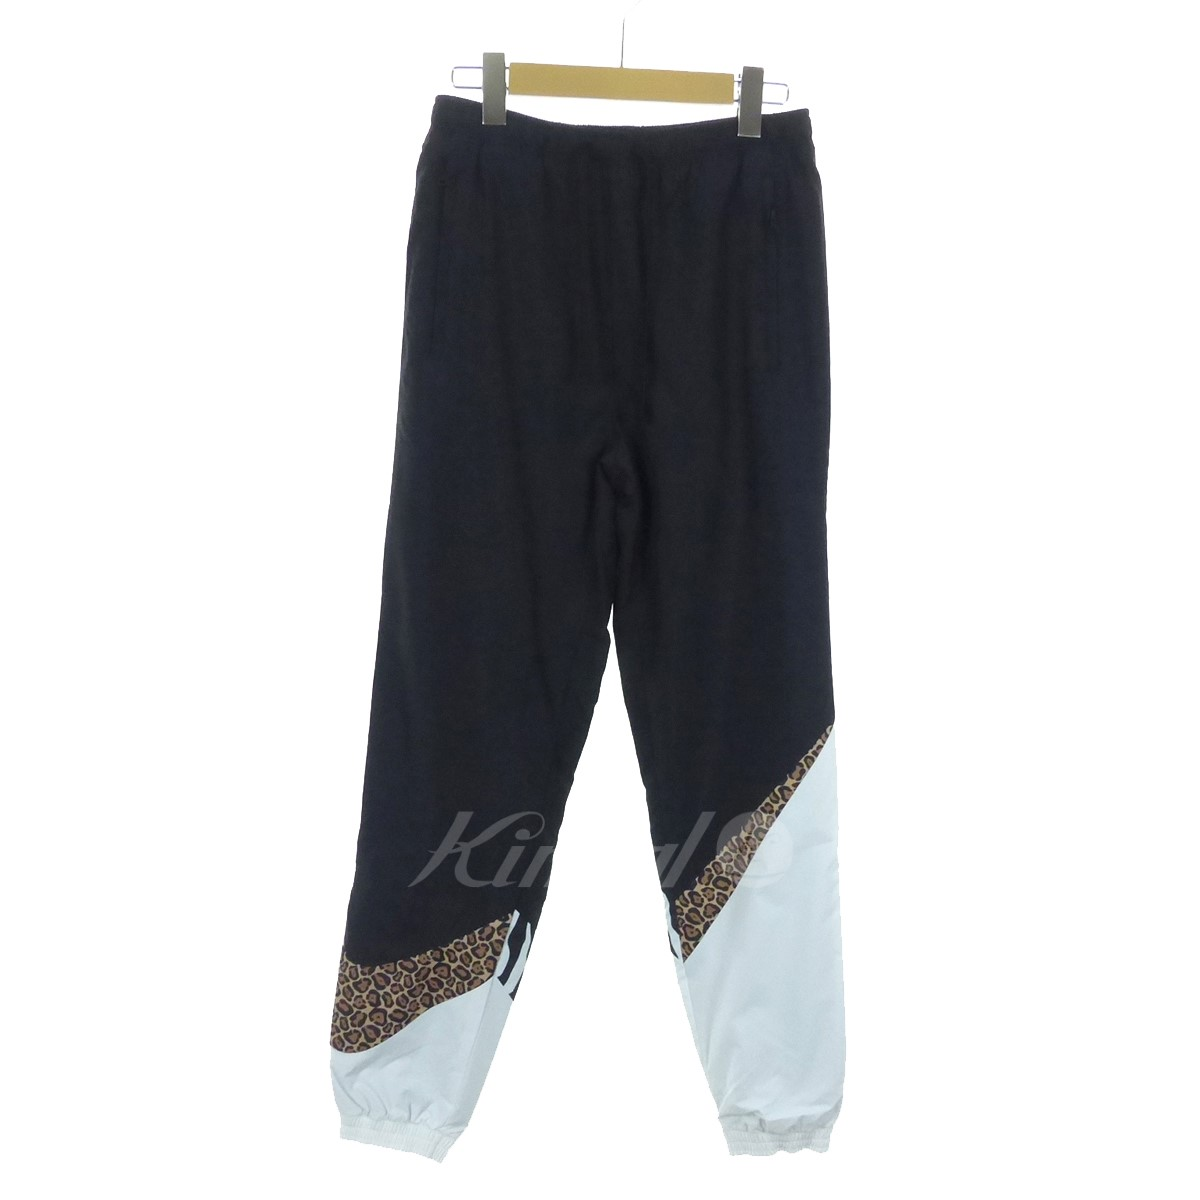 7d9c71d654c2 kindal  KITH X NIKE BIG SWOOSH PANTS animal pattern trackpants ...